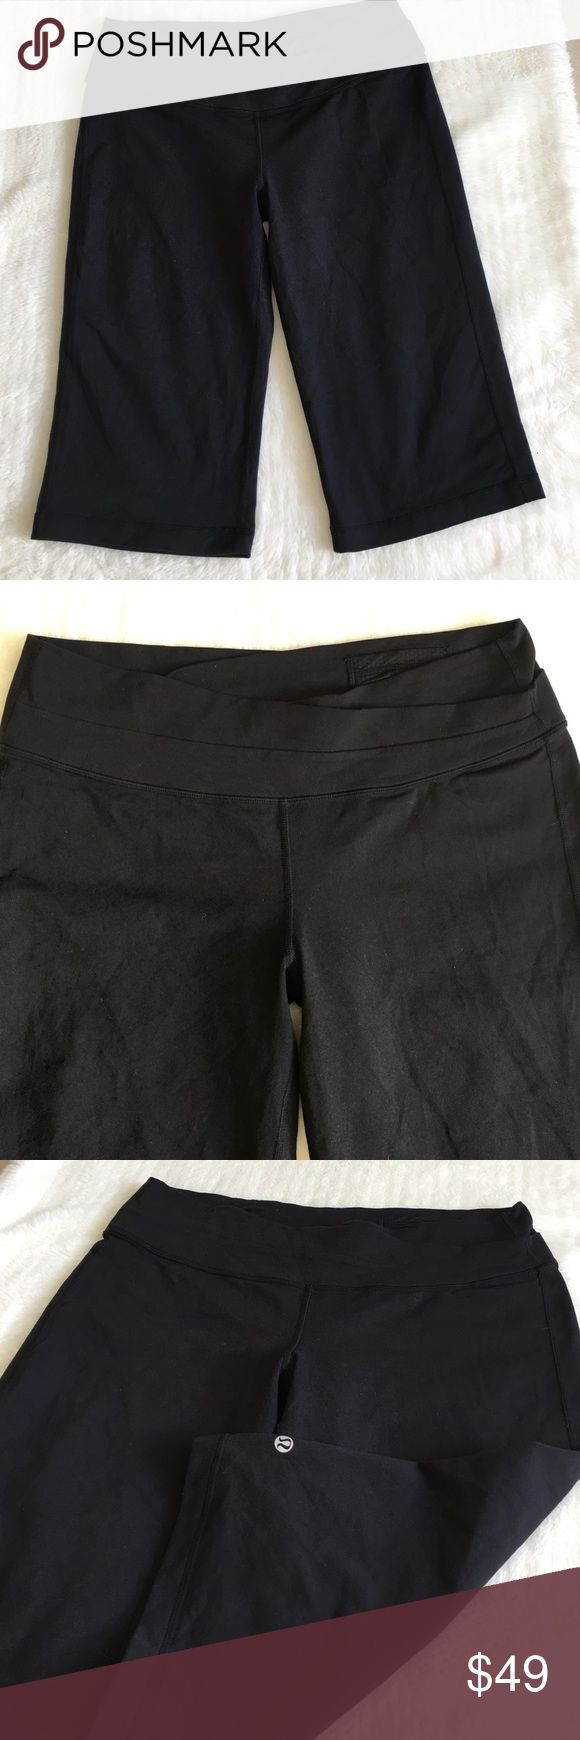 "Lululemon Crop Capri Black Pants Size 12 Preowned barely worn Lululemon Black Capri Crop Leggings size 12. Inseam is 14.5"" inches. Please look at pictures for better reference. Happy shopping!! lululemon athletica Pants"